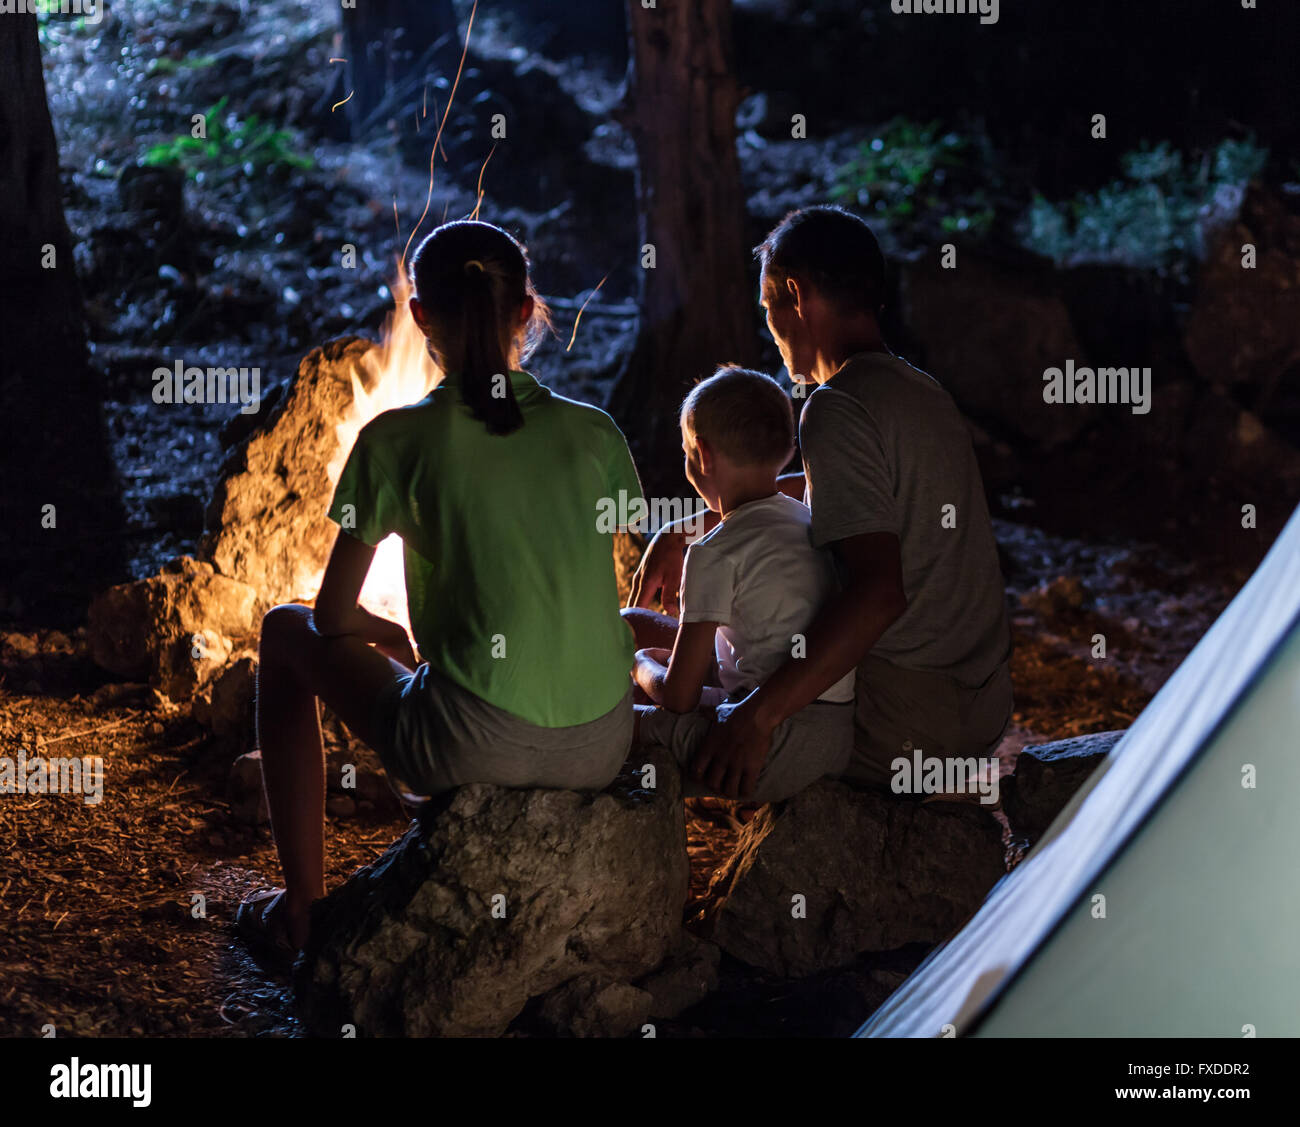 Family in the camping at night - Stock Image